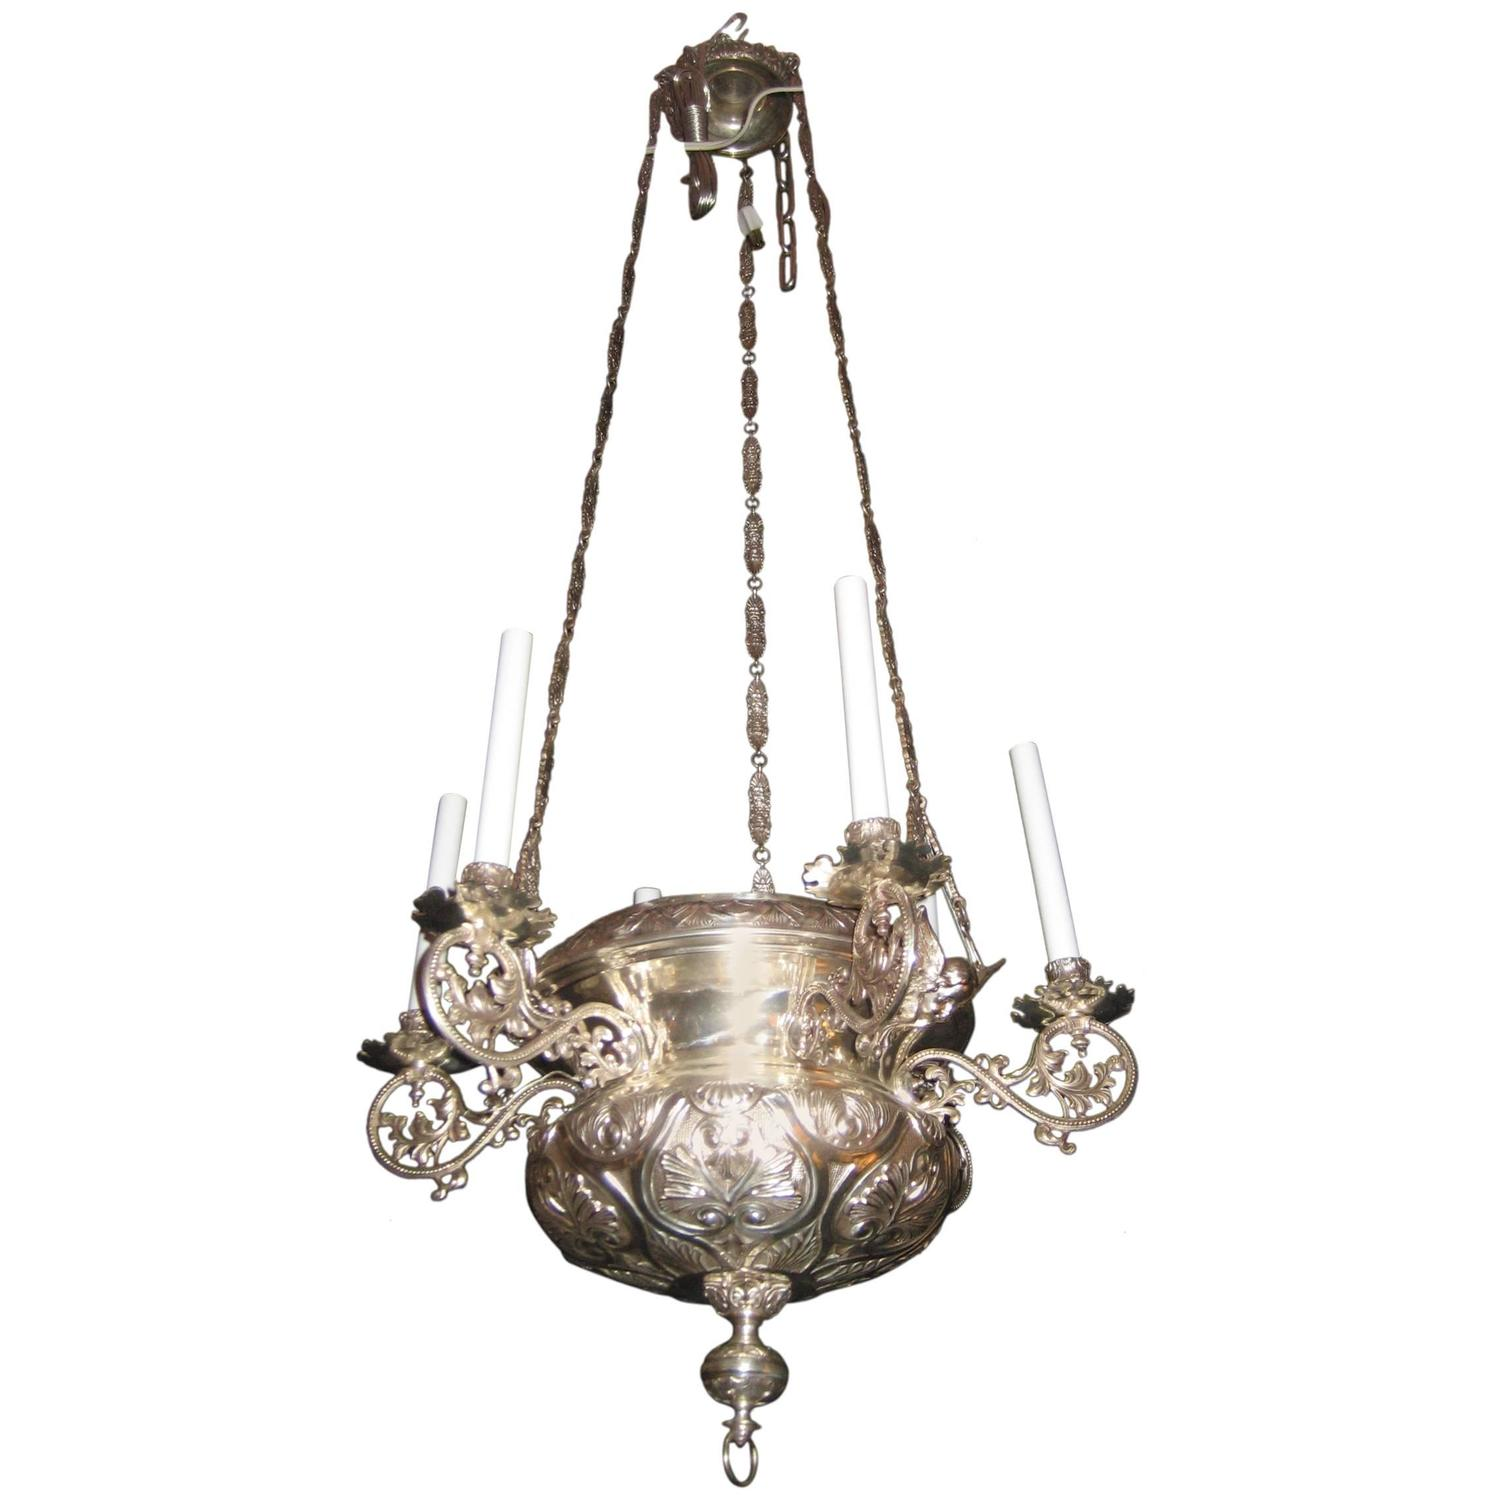 Unique antique french moorish style silvered bronze multi light chandelier for sale at 1stdibs - Moorish chandelier ...